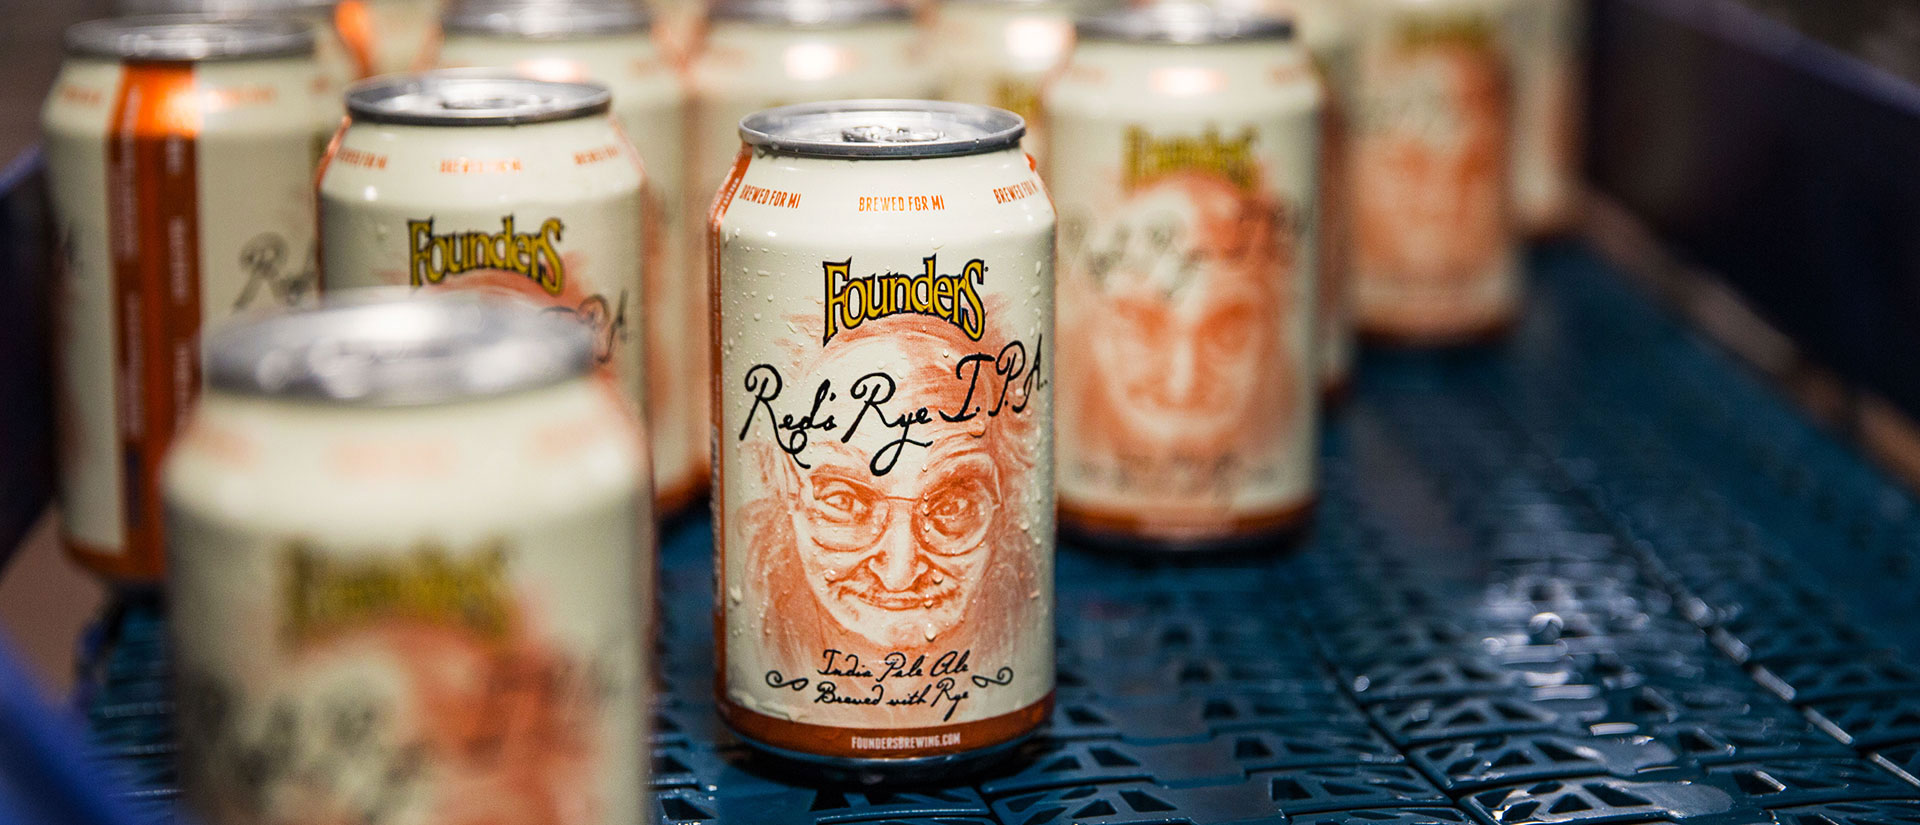 Cold cans of Founders Red's Rye Indian Pale Ale